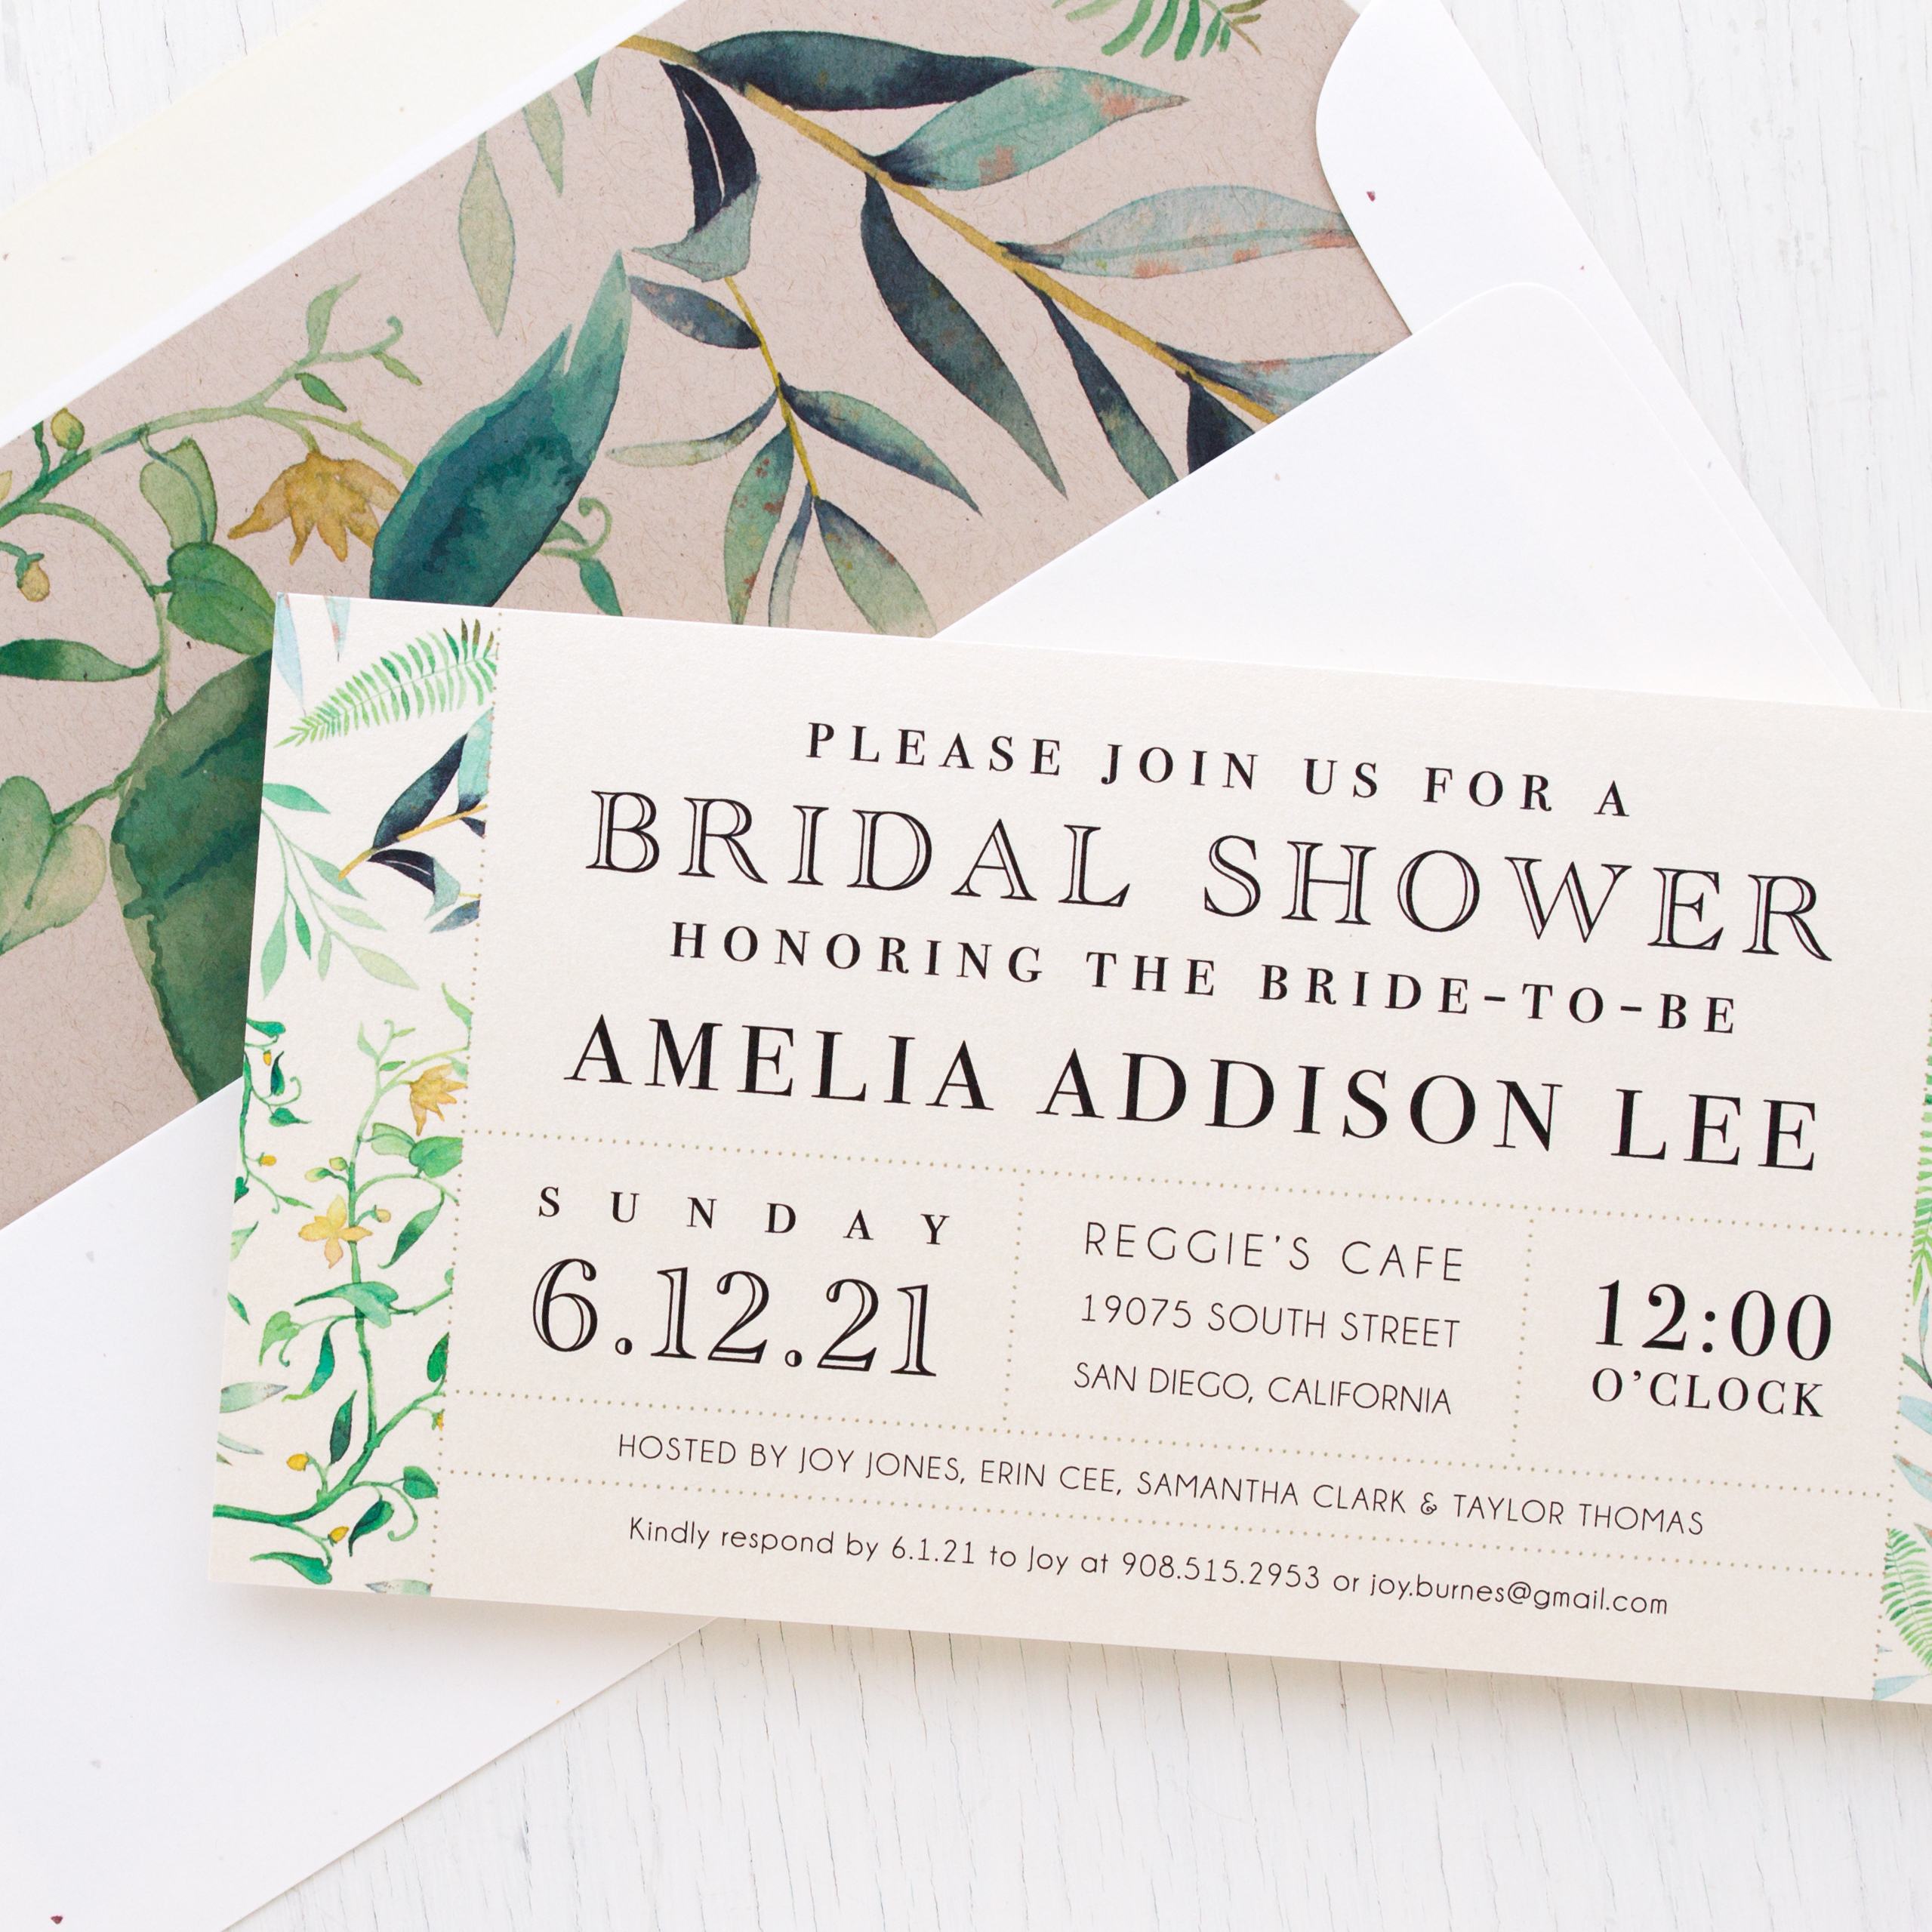 Botanical garden bridal shower invitations beacon lane botanical garden bridal shower invitations filmwisefo